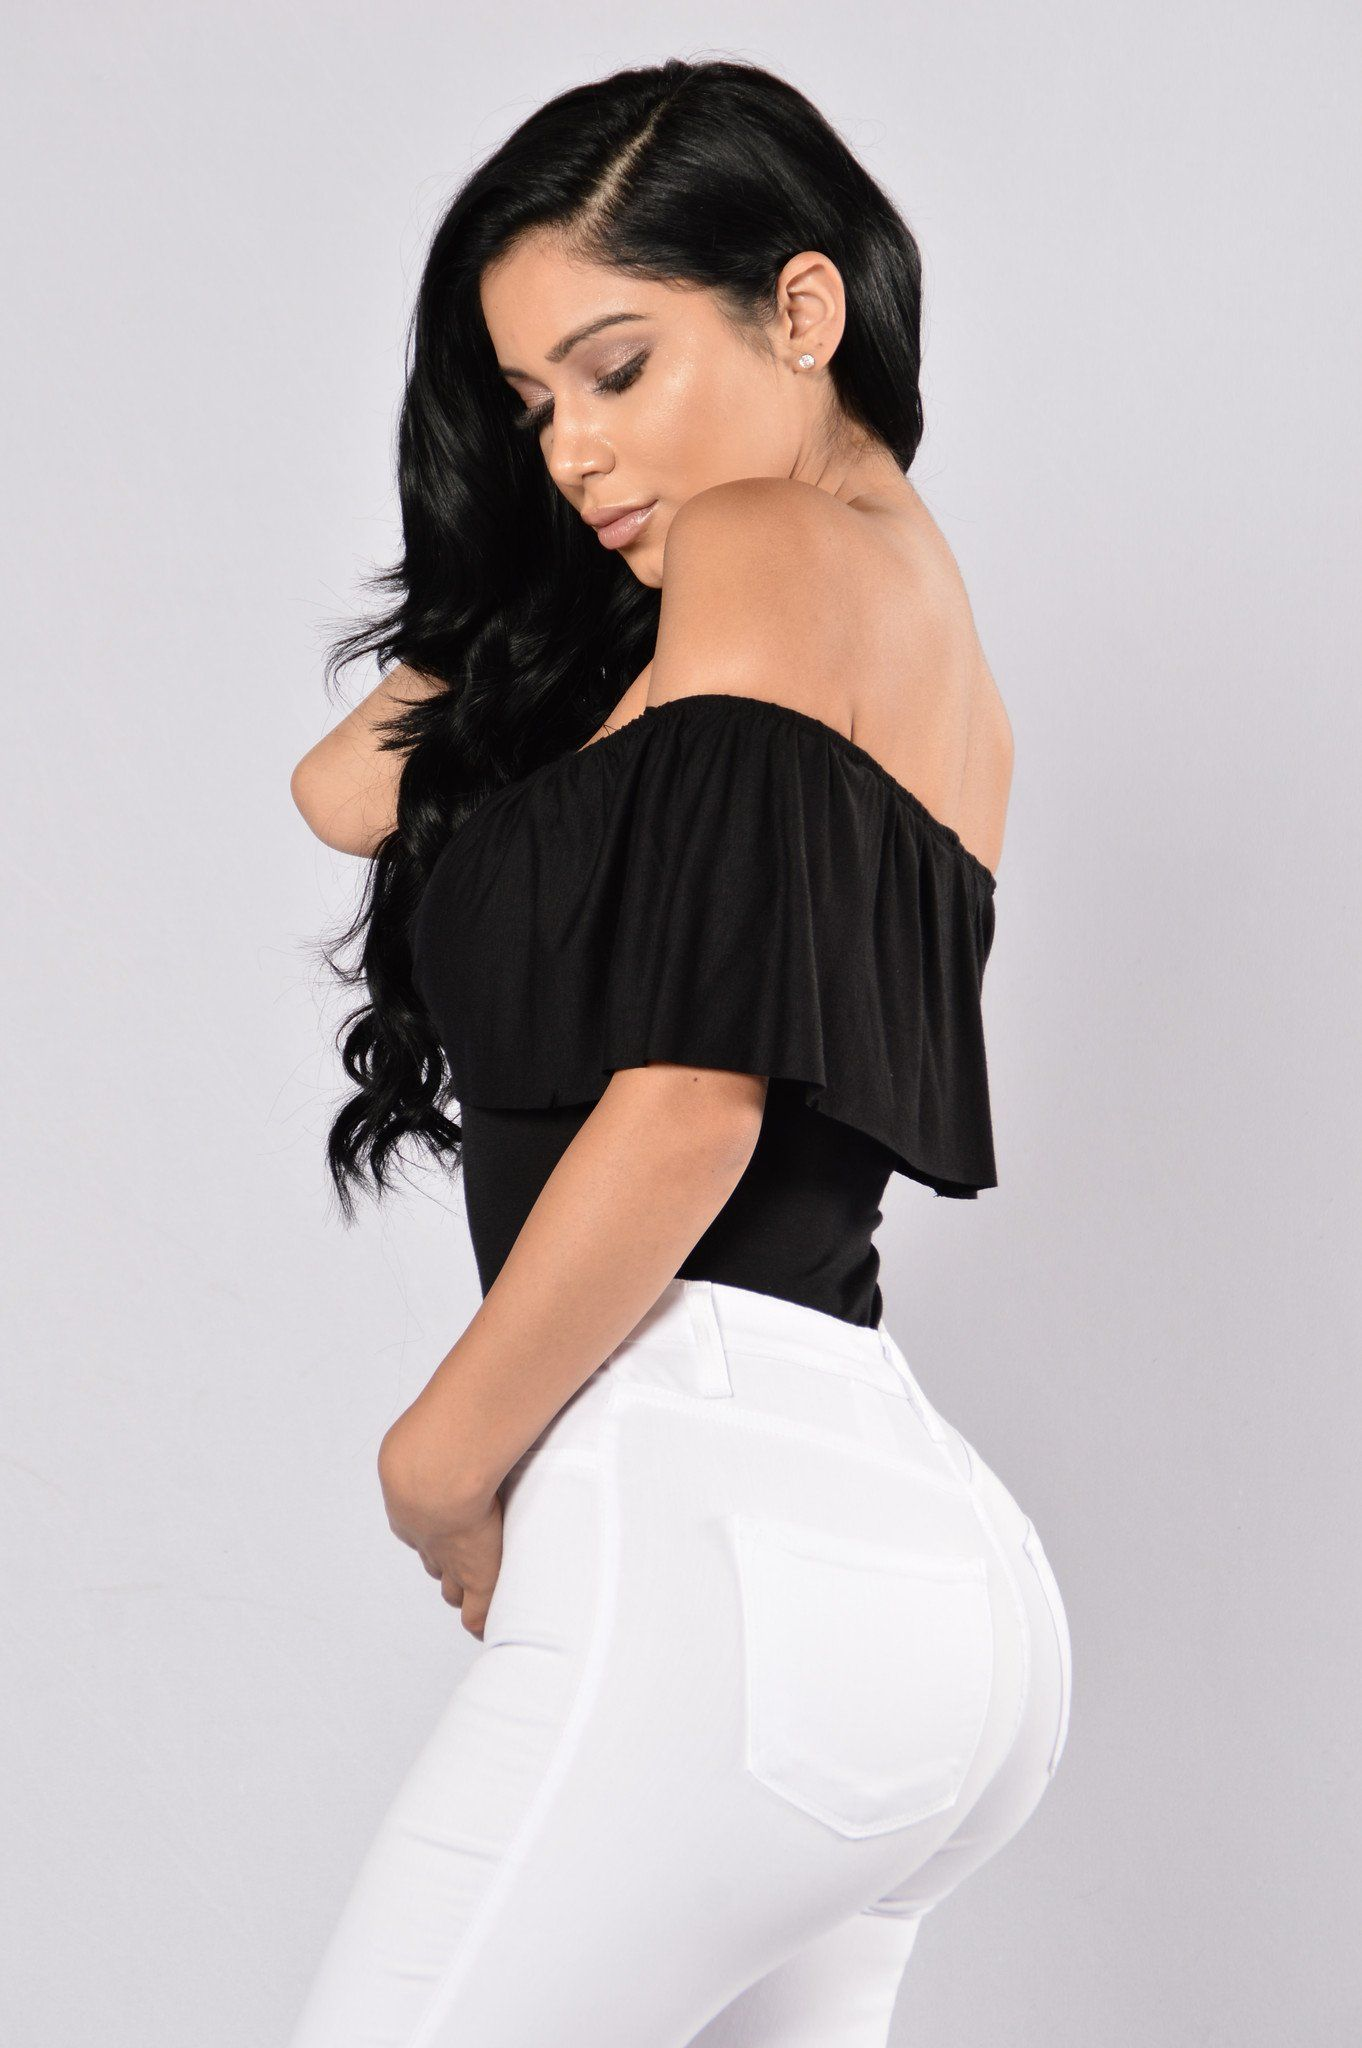 Available in Burgundy and Black Off Shoulder Body Suit Top Ruffle Snap  Button Bottom Cheeky Bottom Sleeveless Made in USA 95% Rayon 5% Spandex All  Bodysuits ... 781df8962